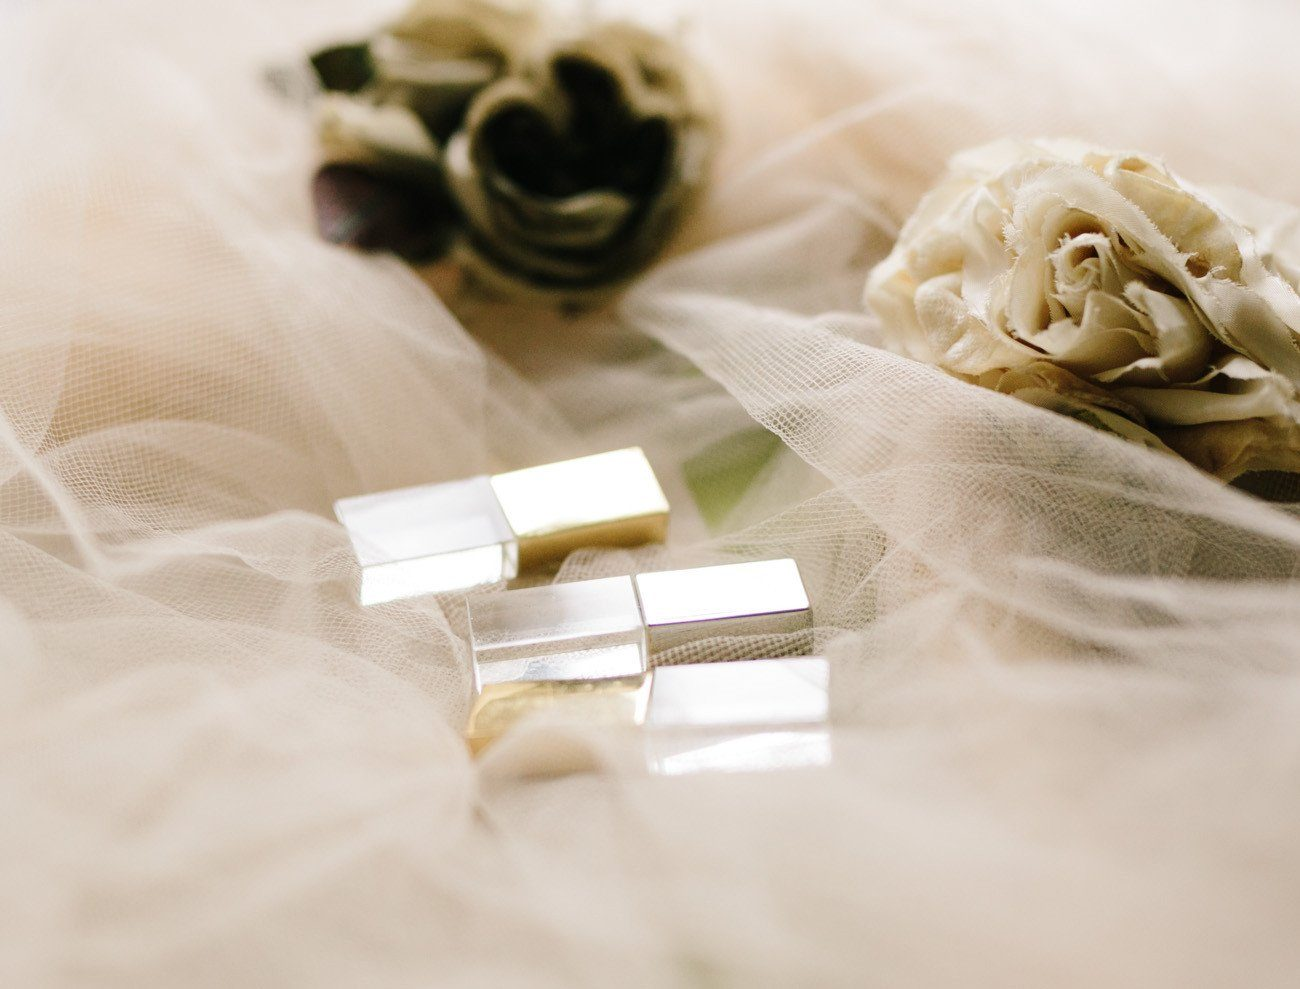 silver and gold metal and crystal usb drives